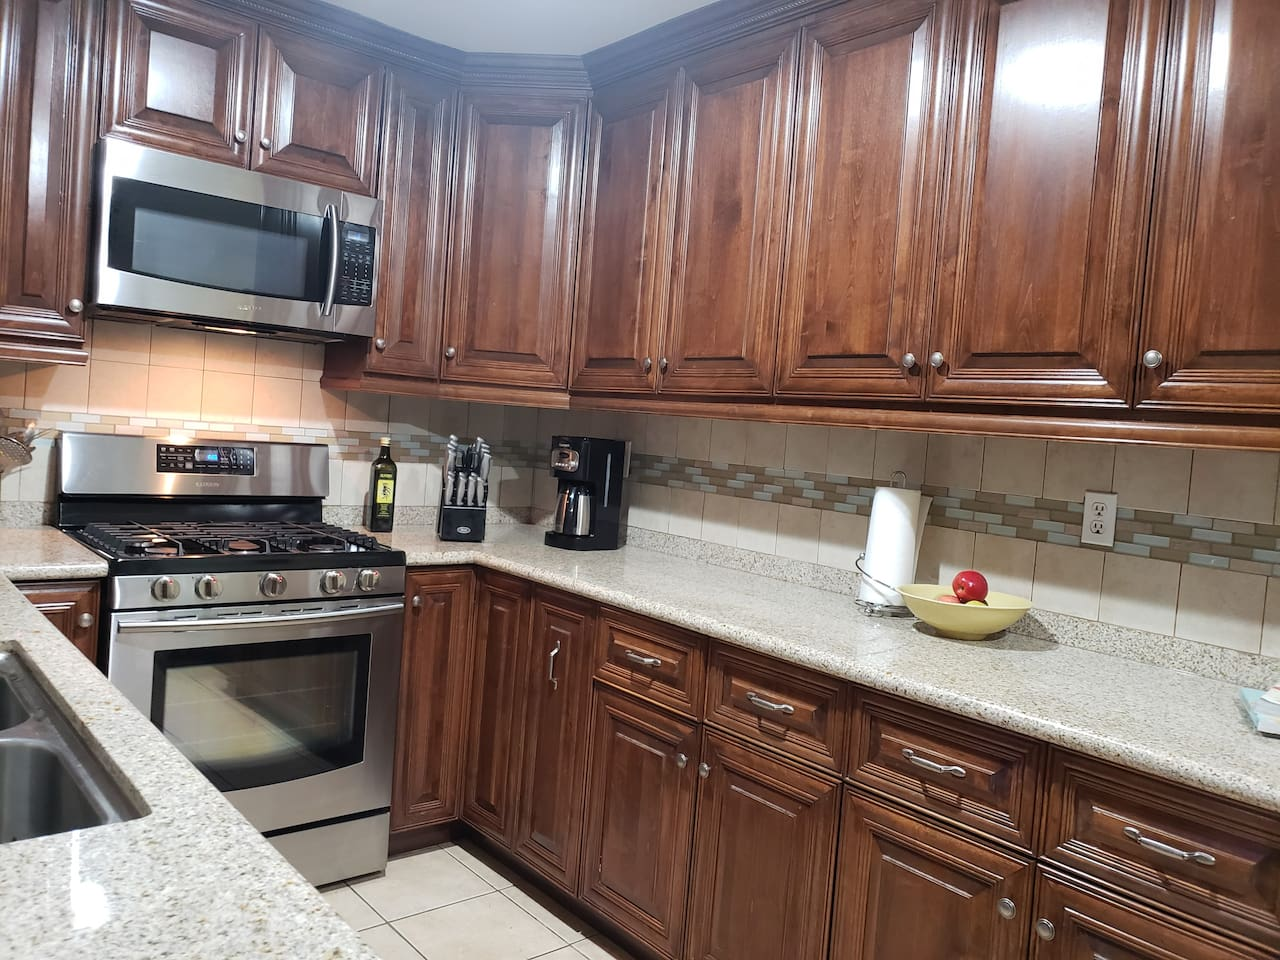 Spacious, functional kitchen. Well-equipped with stainless steel appliances, cooking utensils such as pans, toaster and coffee maker.